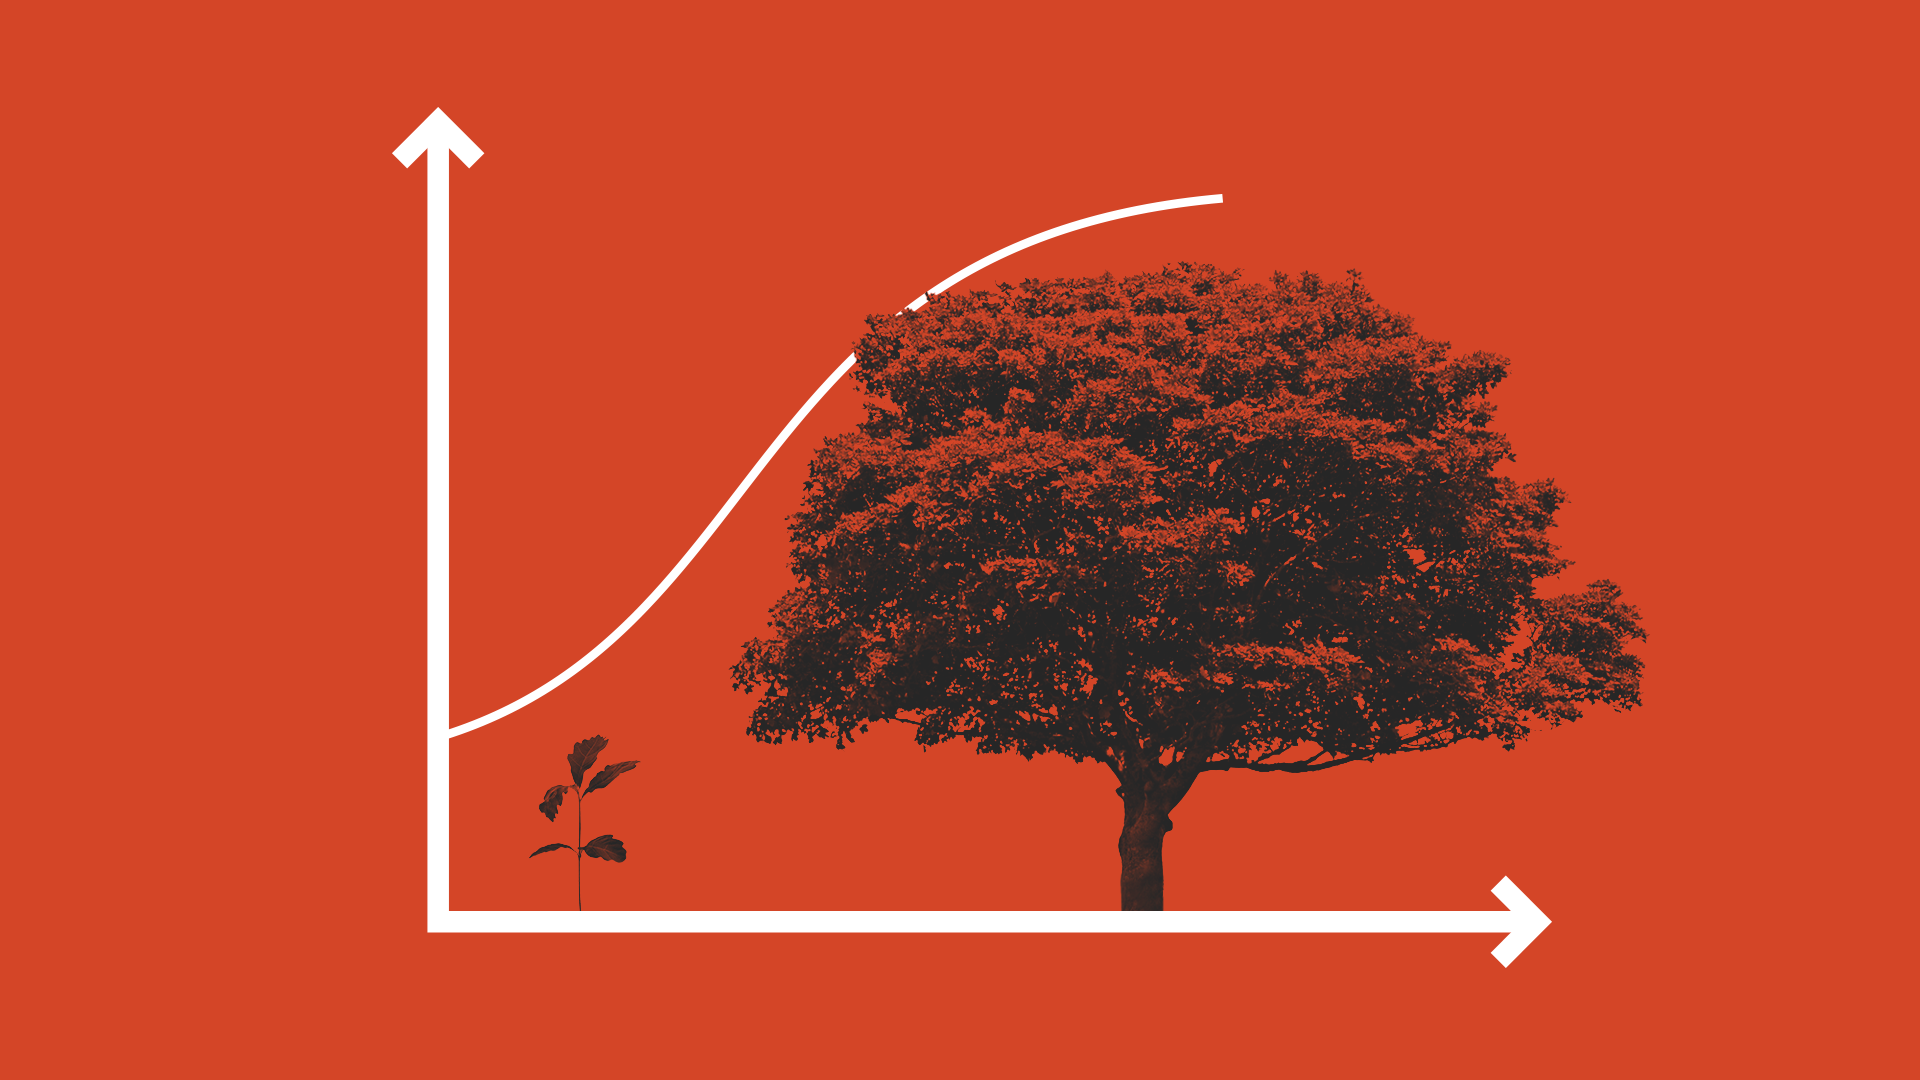 illustrated graph with a tree, symbolizing growth